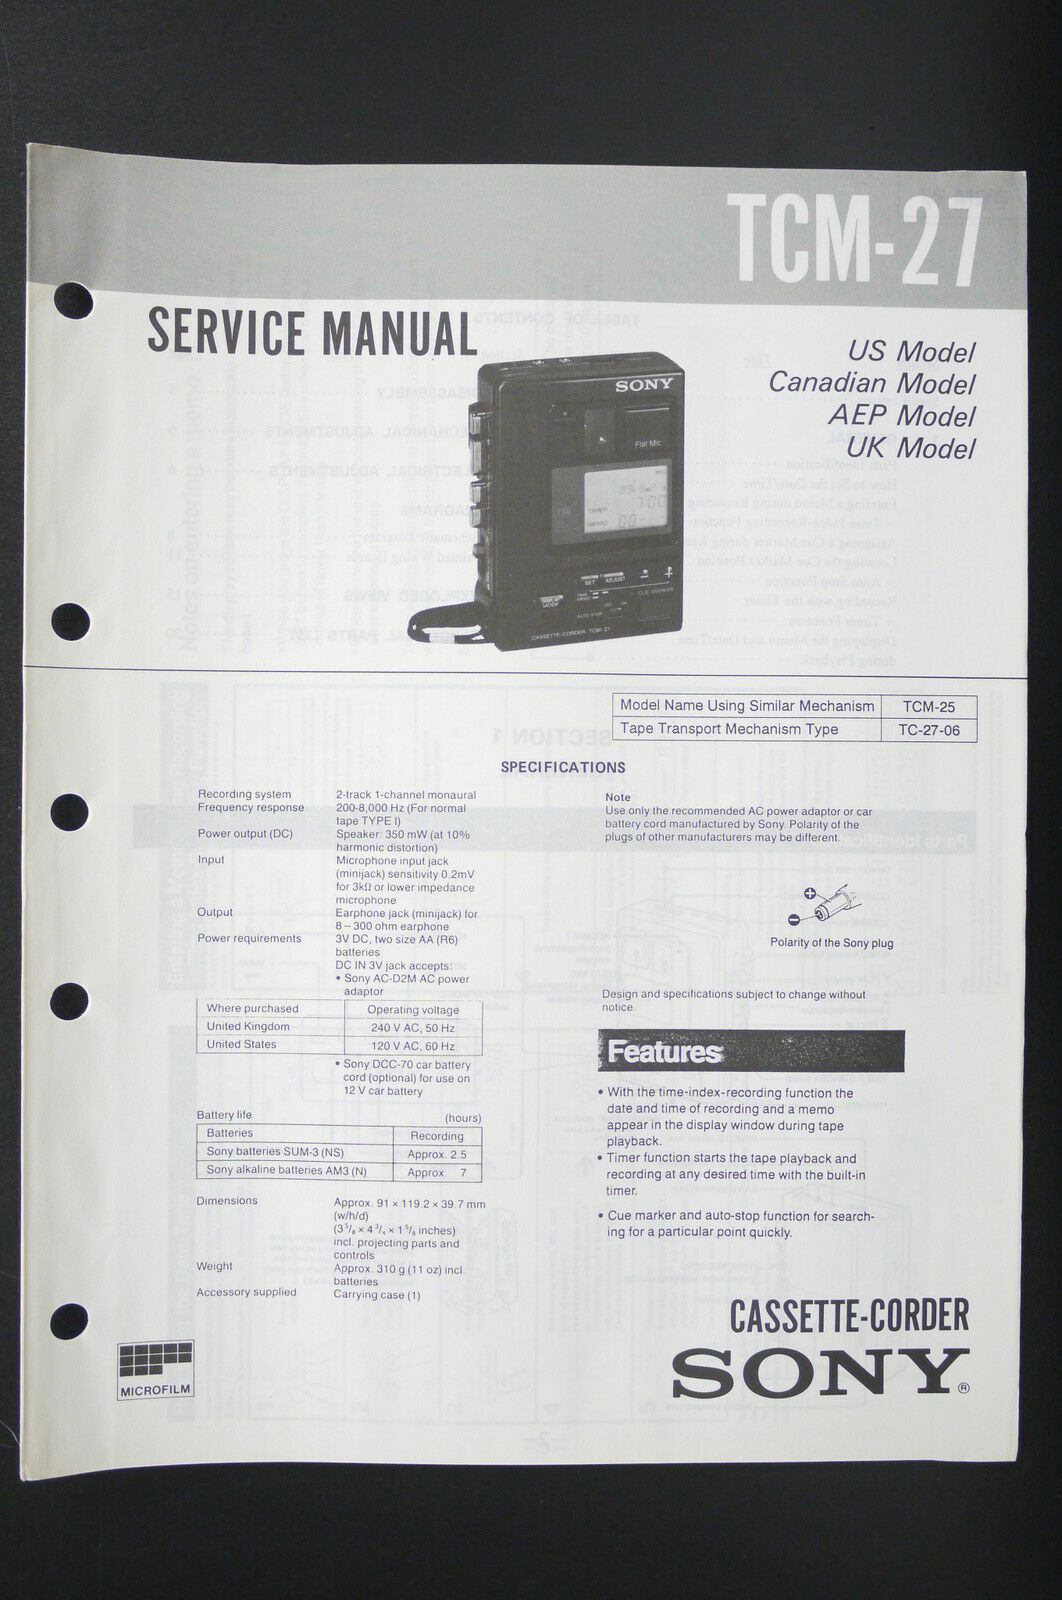 Sony Tcm 27 Walkman Cassette Corder Service Manual Diagram Wiring Sound Bar 1 Of 1only Available